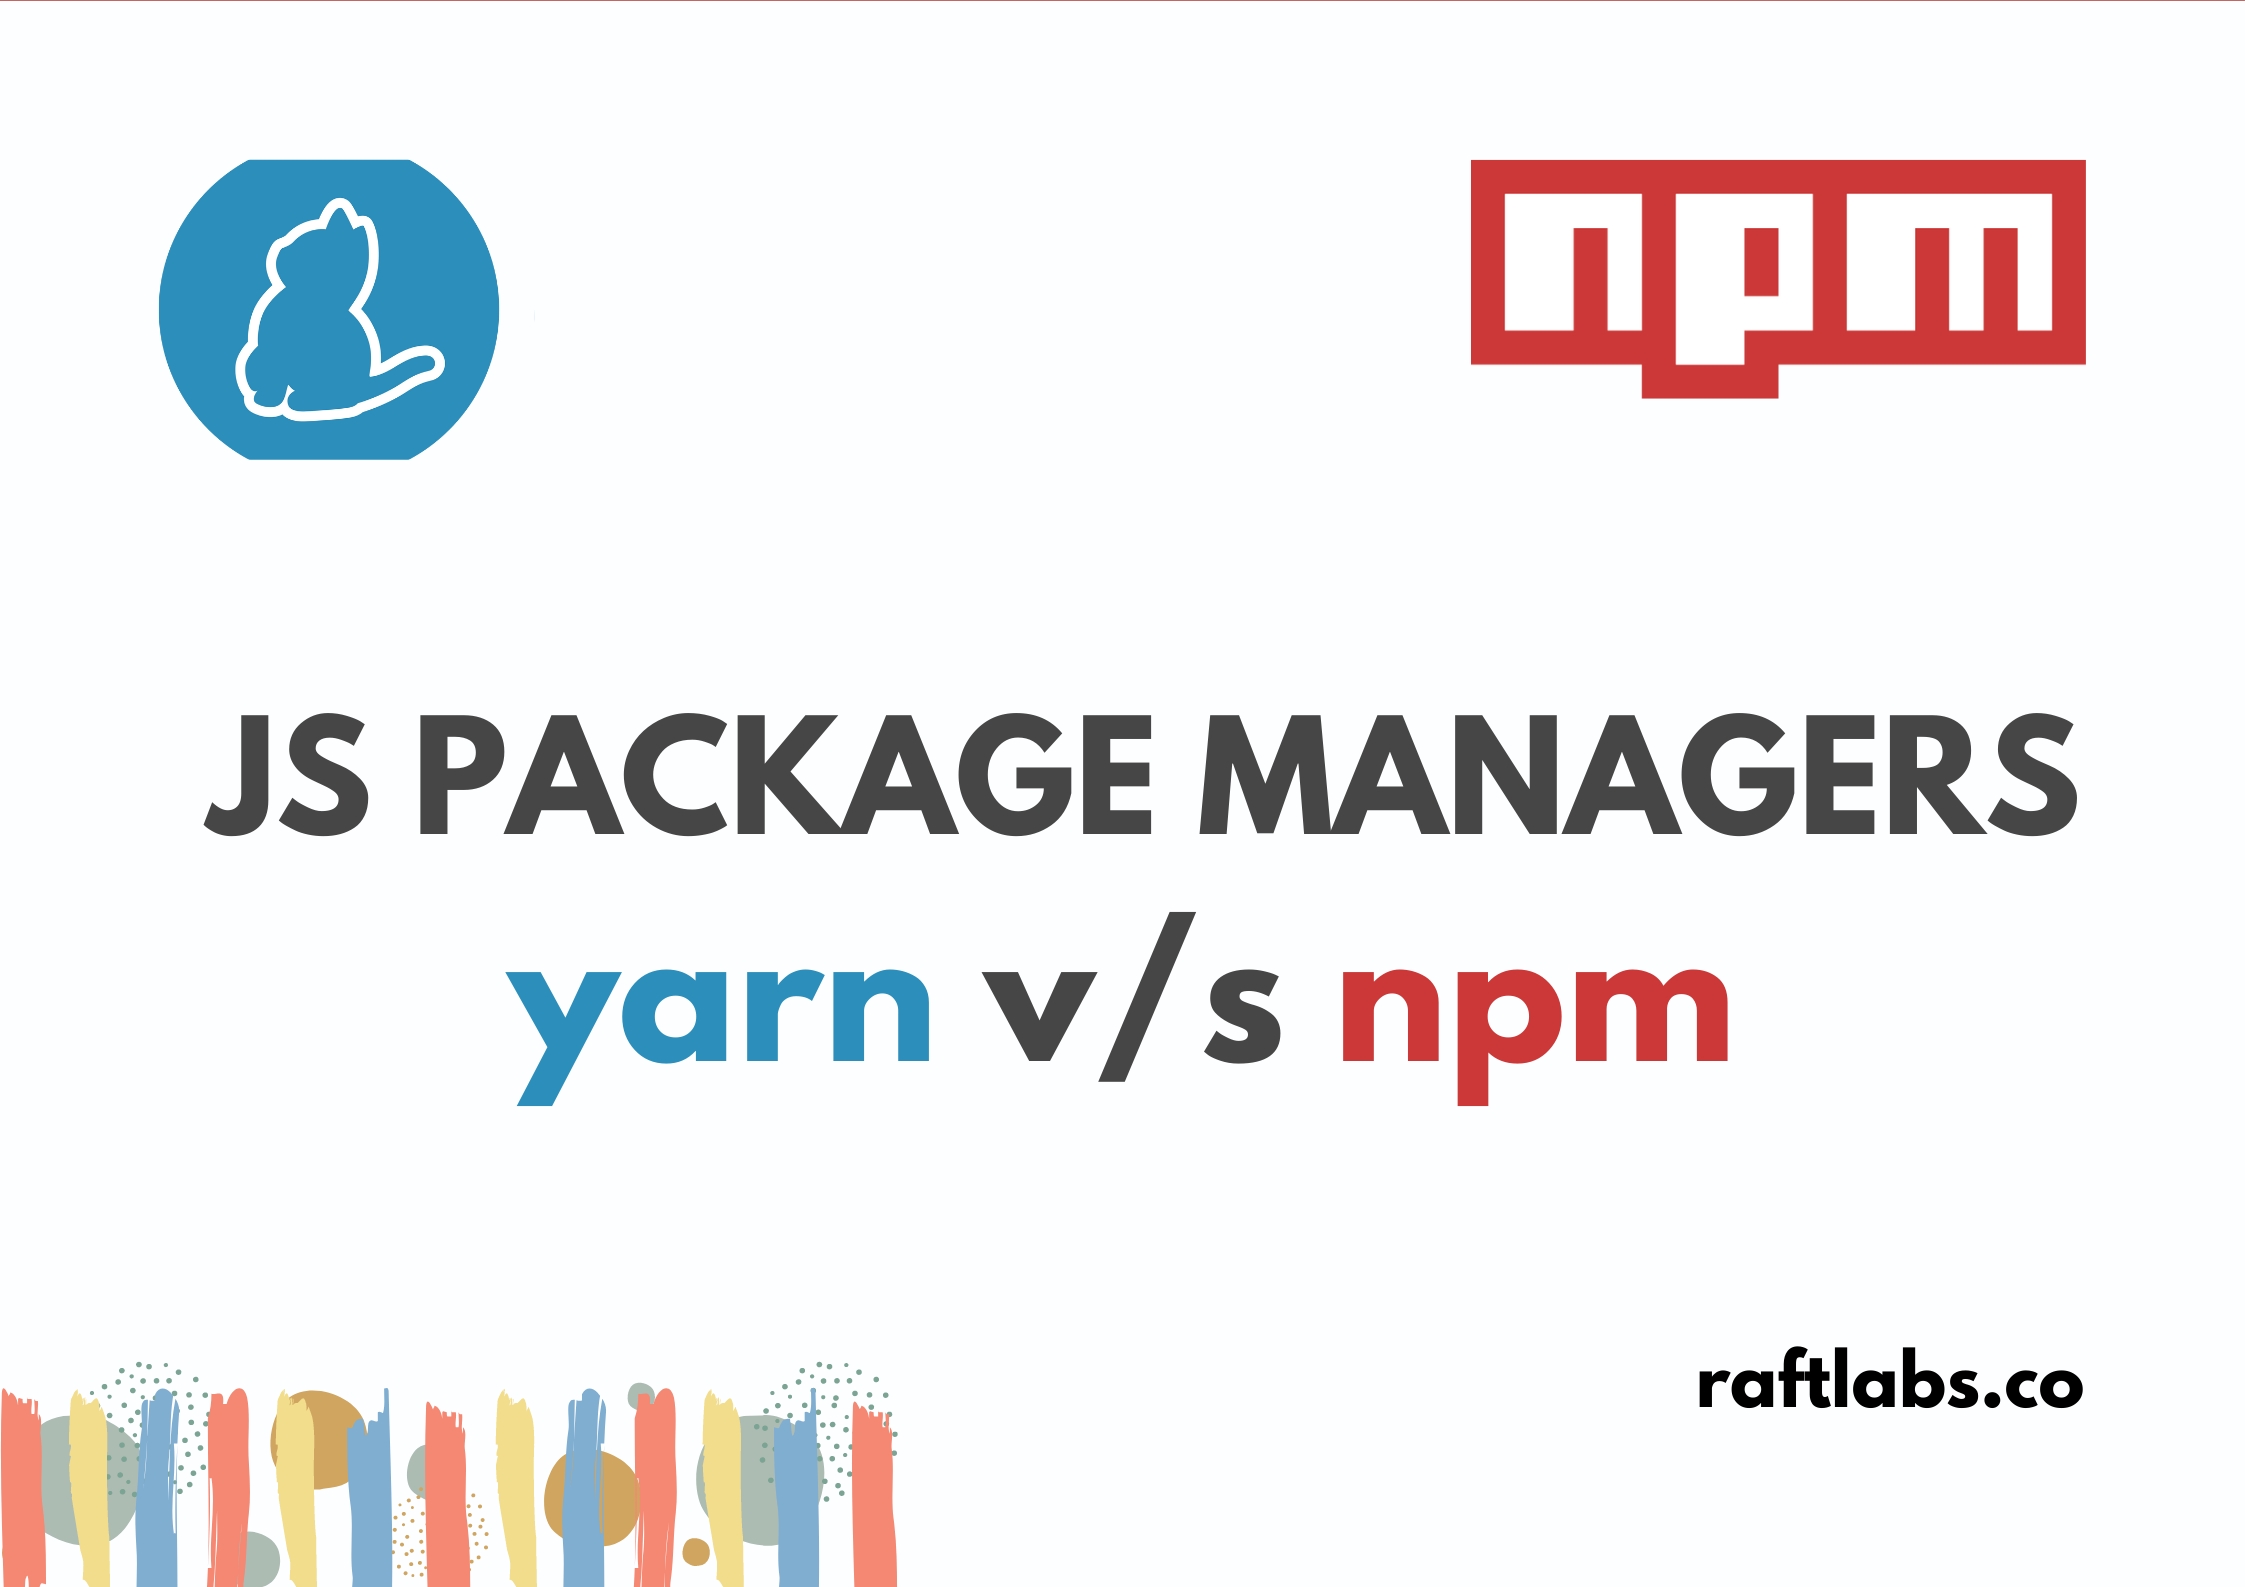 Javascript Package Manager — Yarn vs NPM with yarn and npm logos - raftlabs.co